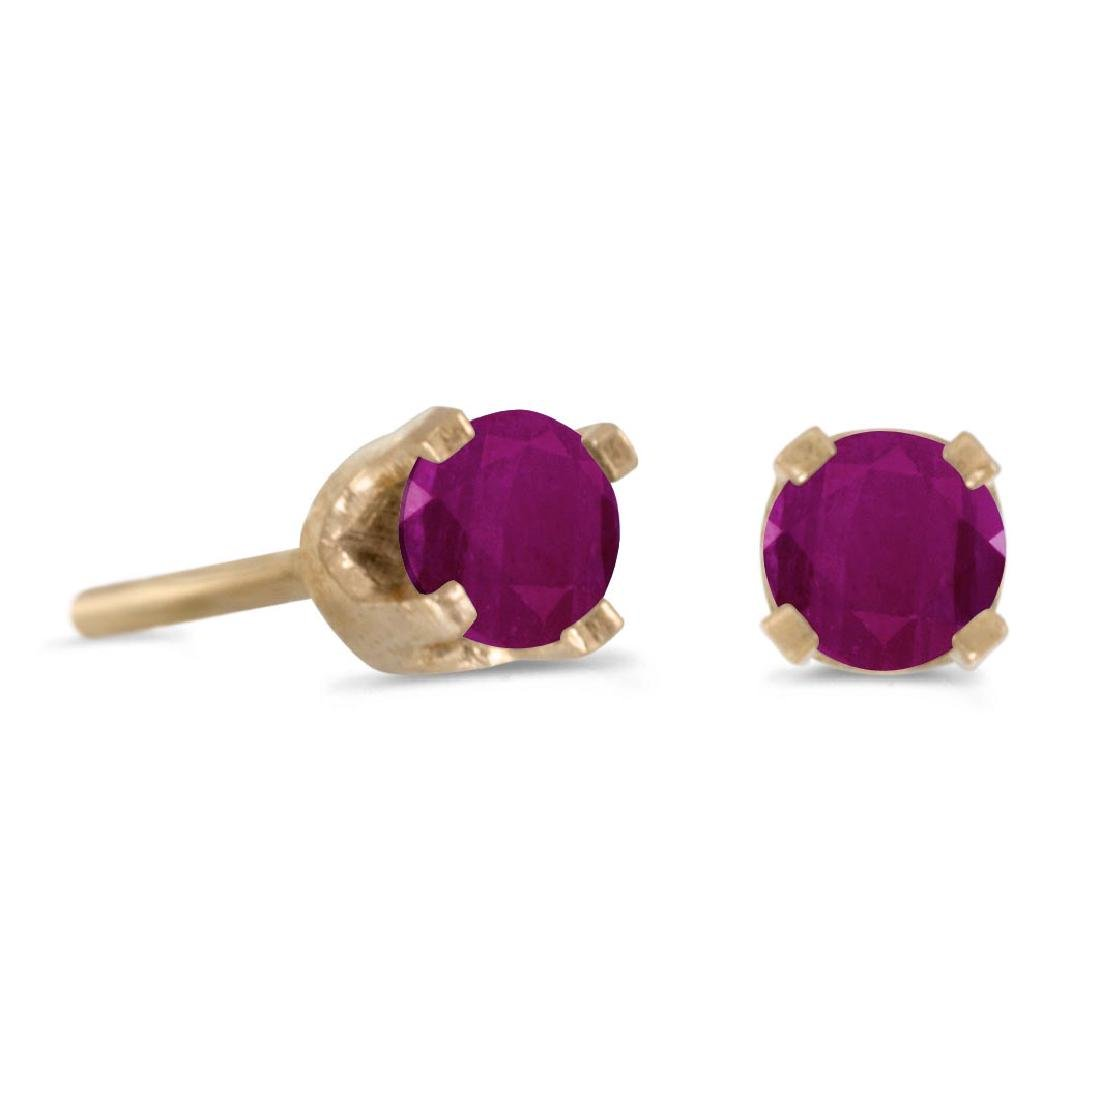 Certified 3 mm Petite Round Genuine Ruby Stud Earrings